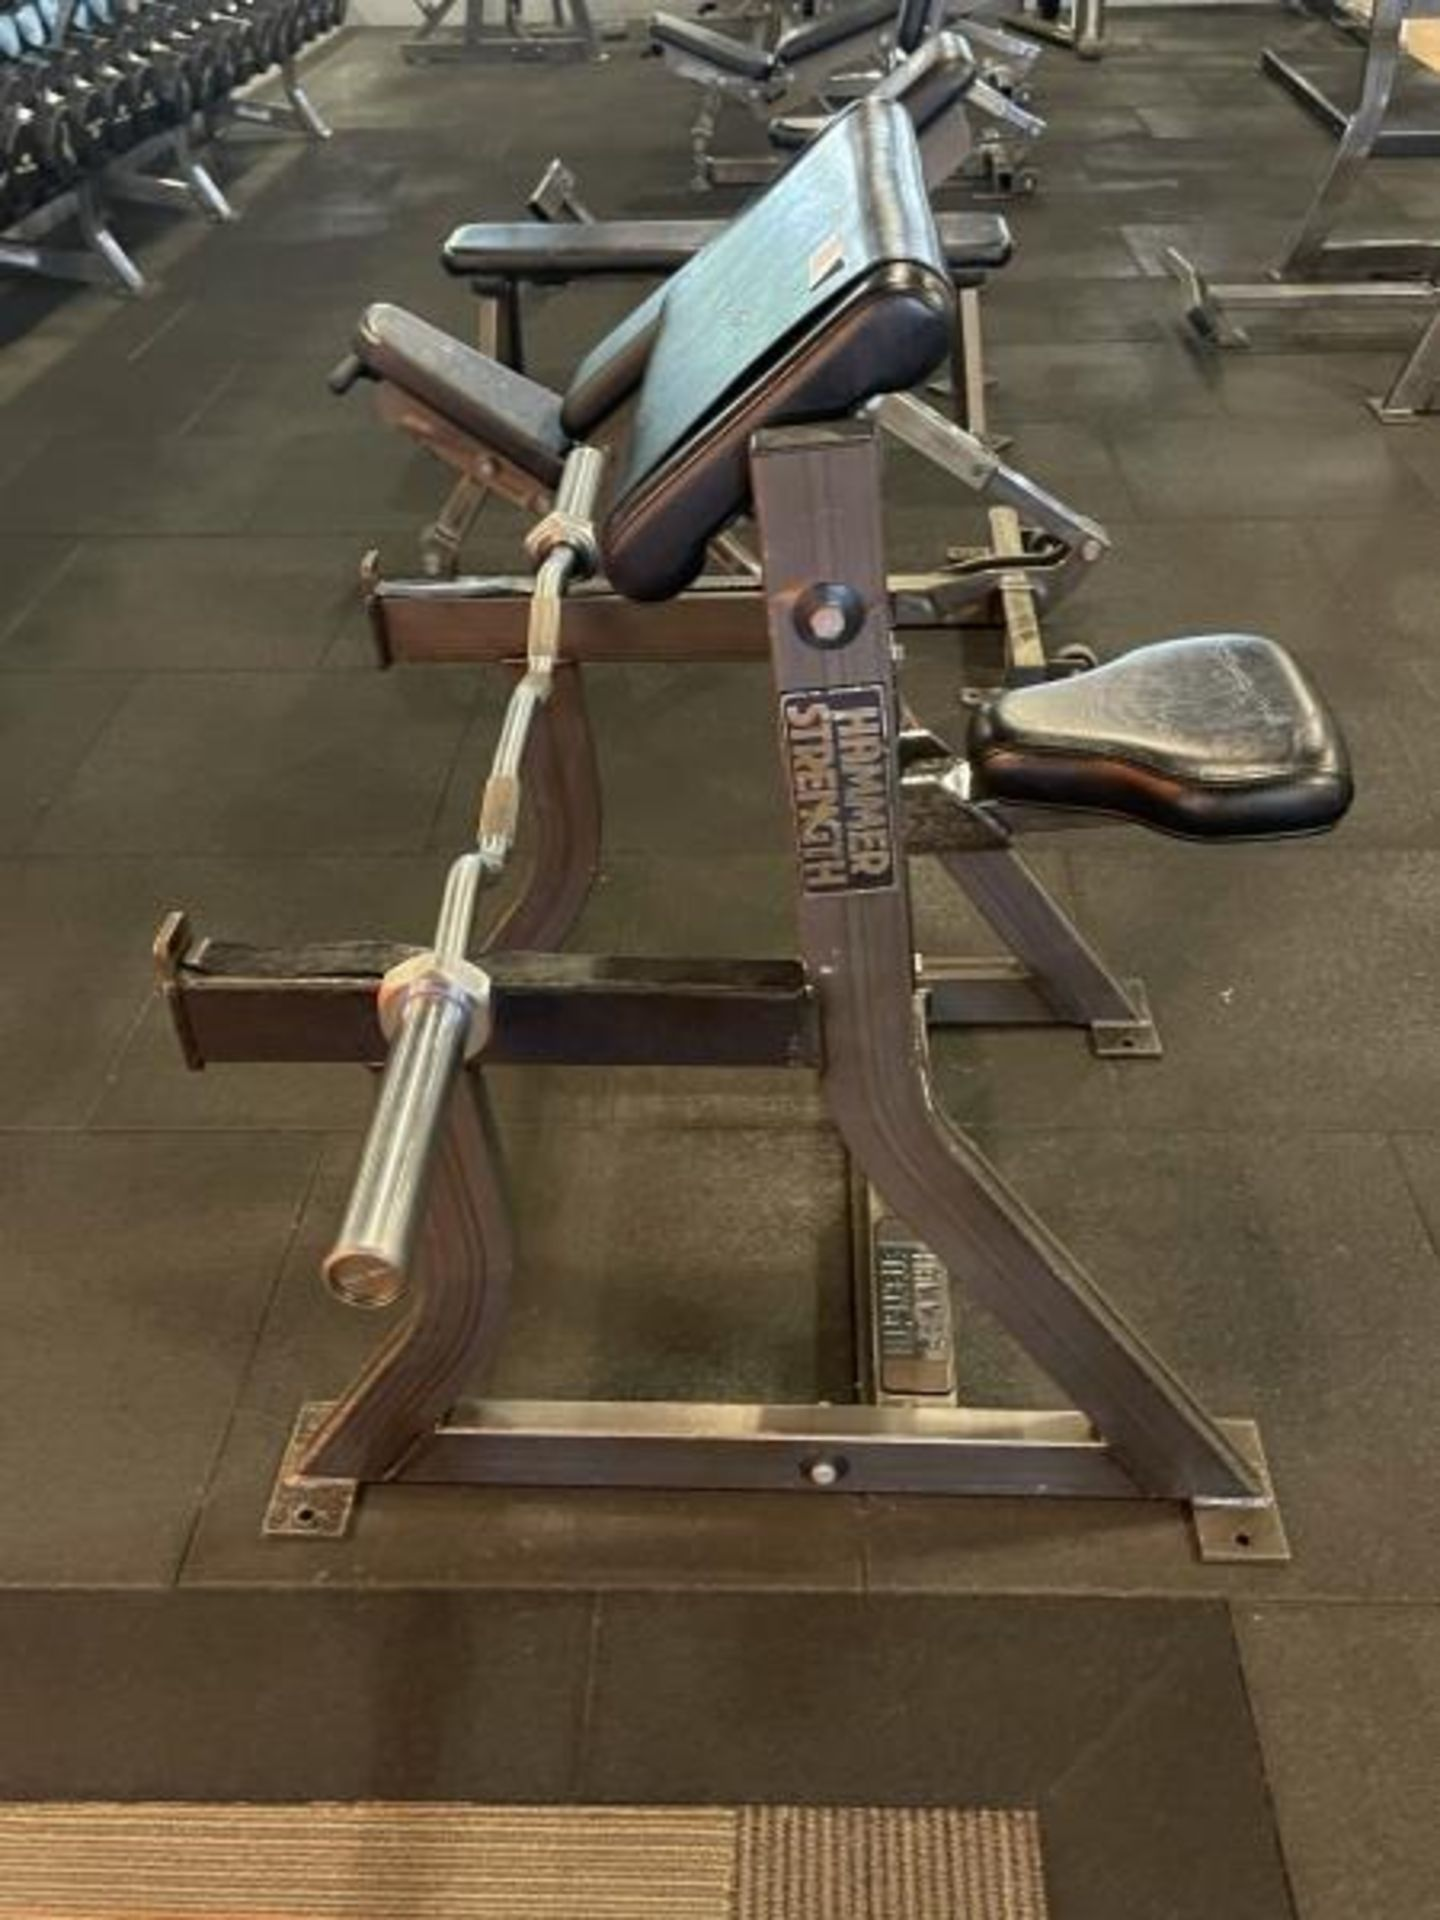 Hammer Strength Bicep/Preacher Curl Bench with Curl Bar M:B01 - Image 3 of 4